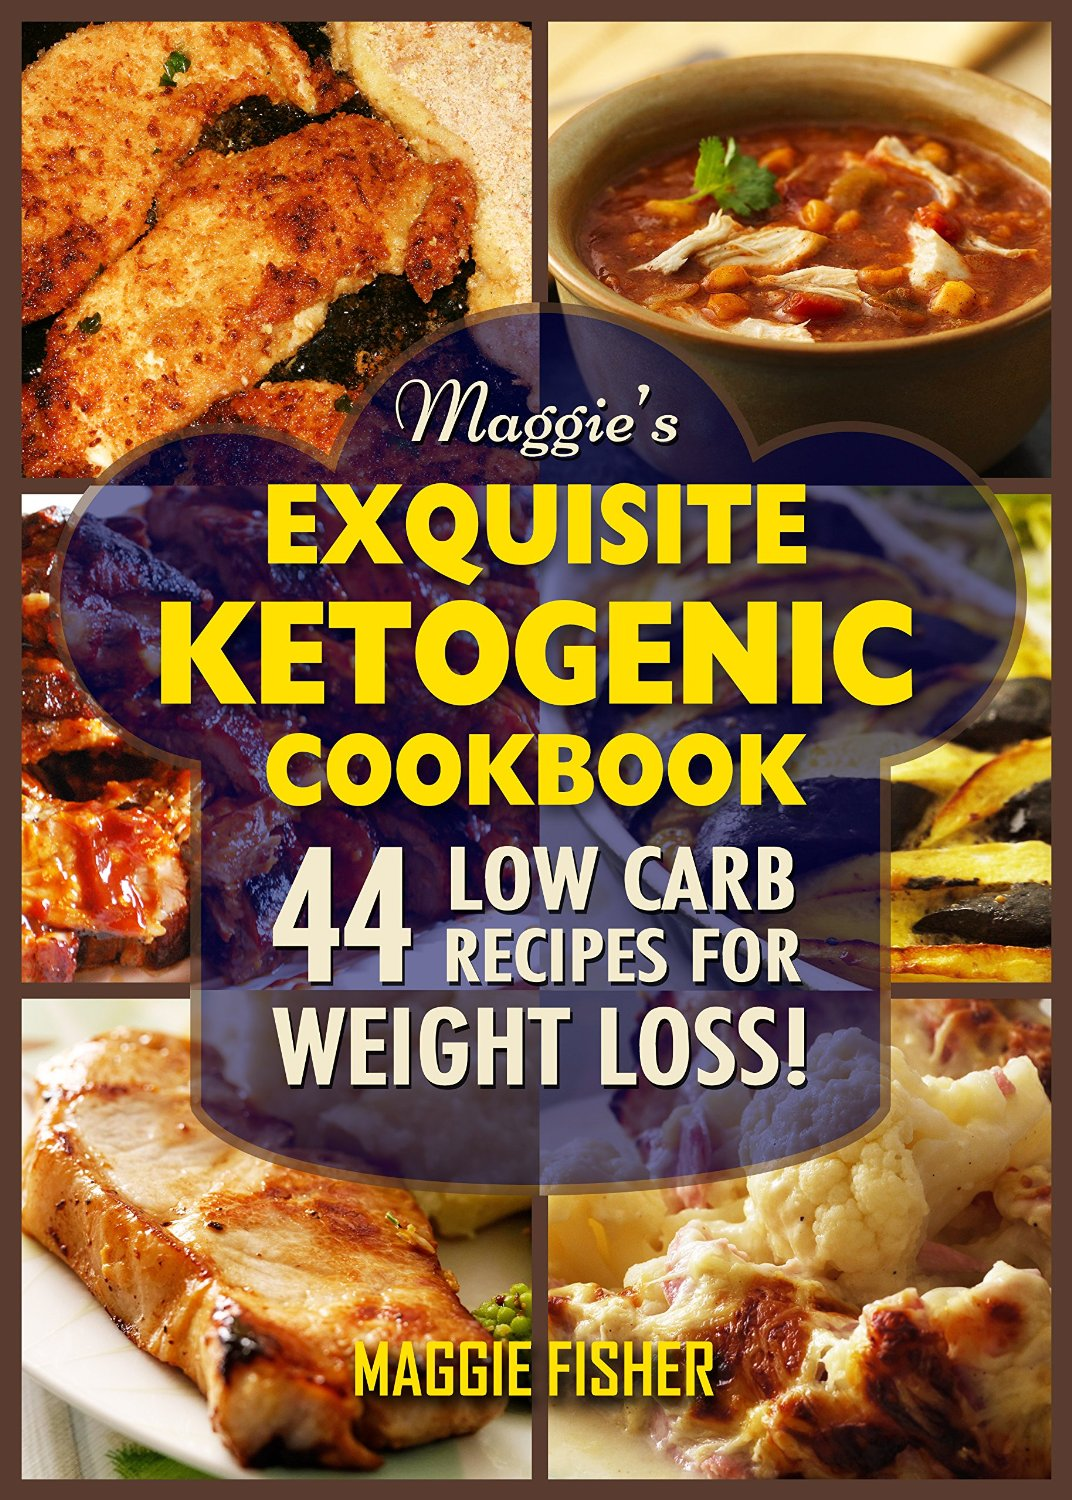 Maggie's Exquisite Ketogenic Cookbook: 44 Low Carb High Fat (LCHF) Recipes for Weight Loss free download